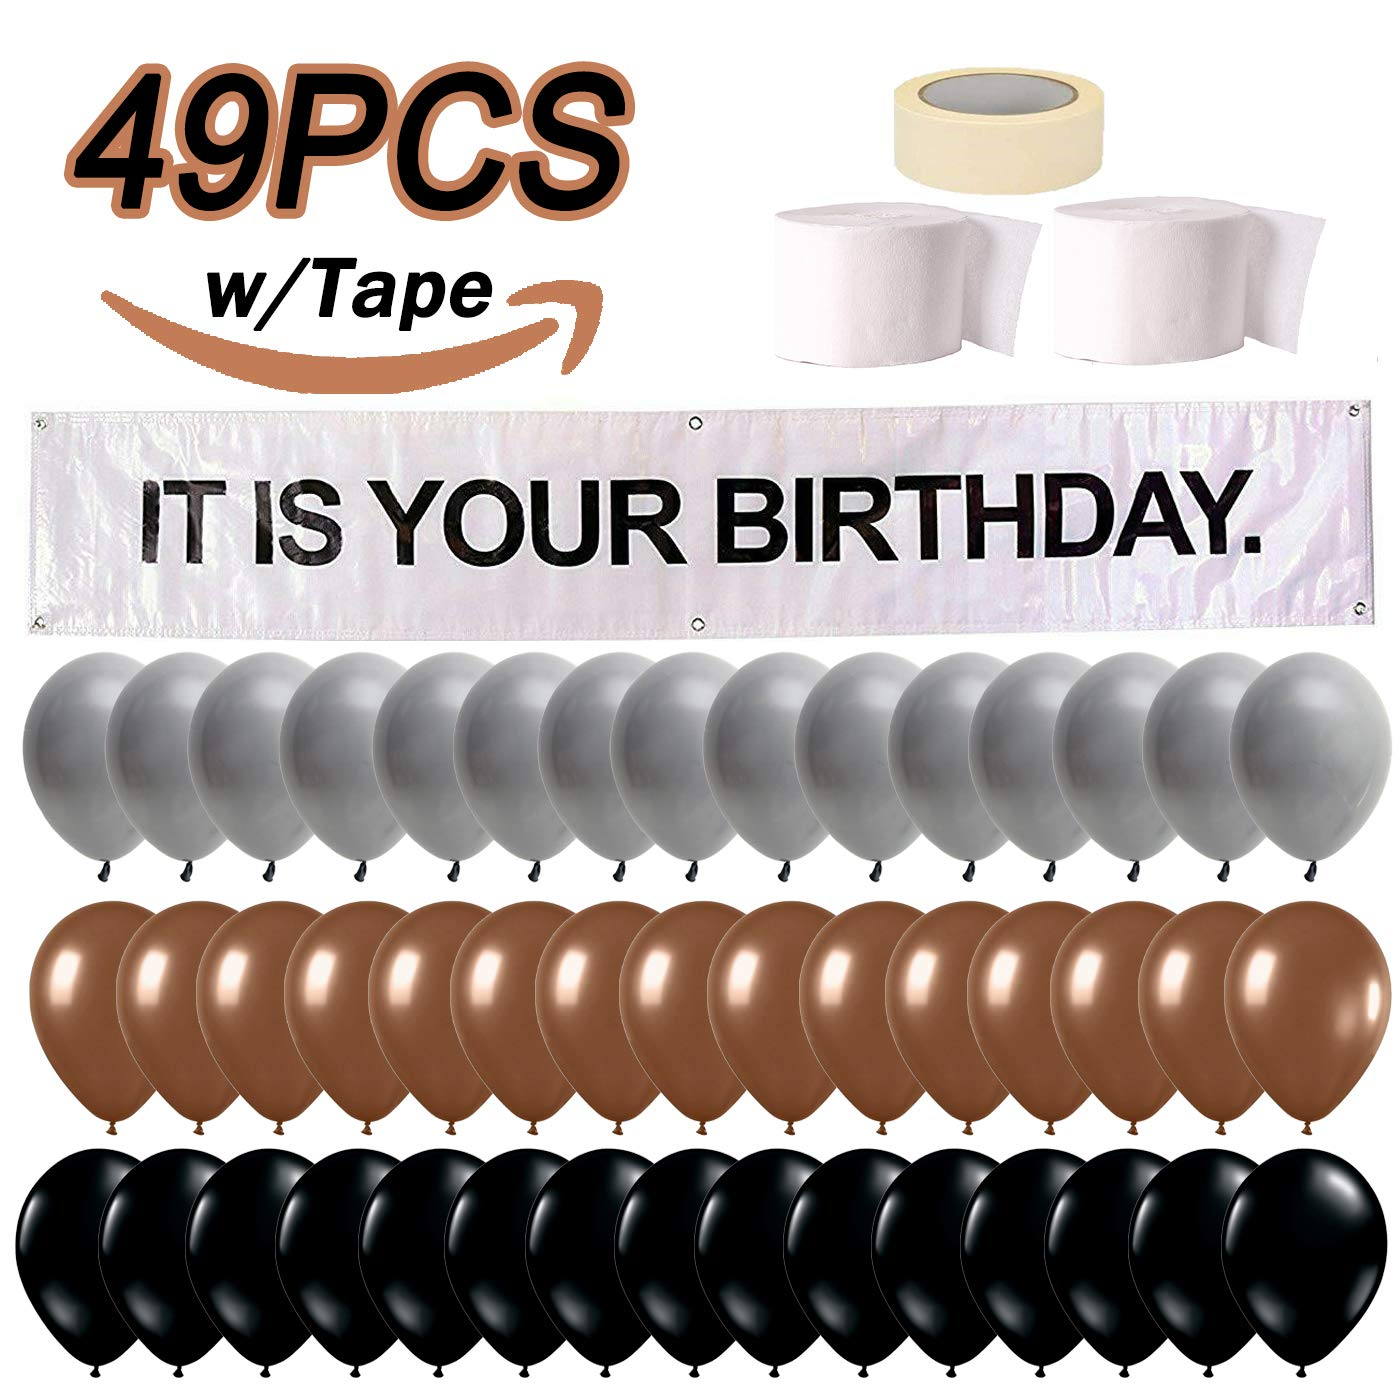 It is Your Birthday Banner, The Office Dwight Theme Infamous Husband Birthday Party Decorations, Brown Black Grey Balloon with White Streamers Tape 49Pcs Full Kit by LovinParty